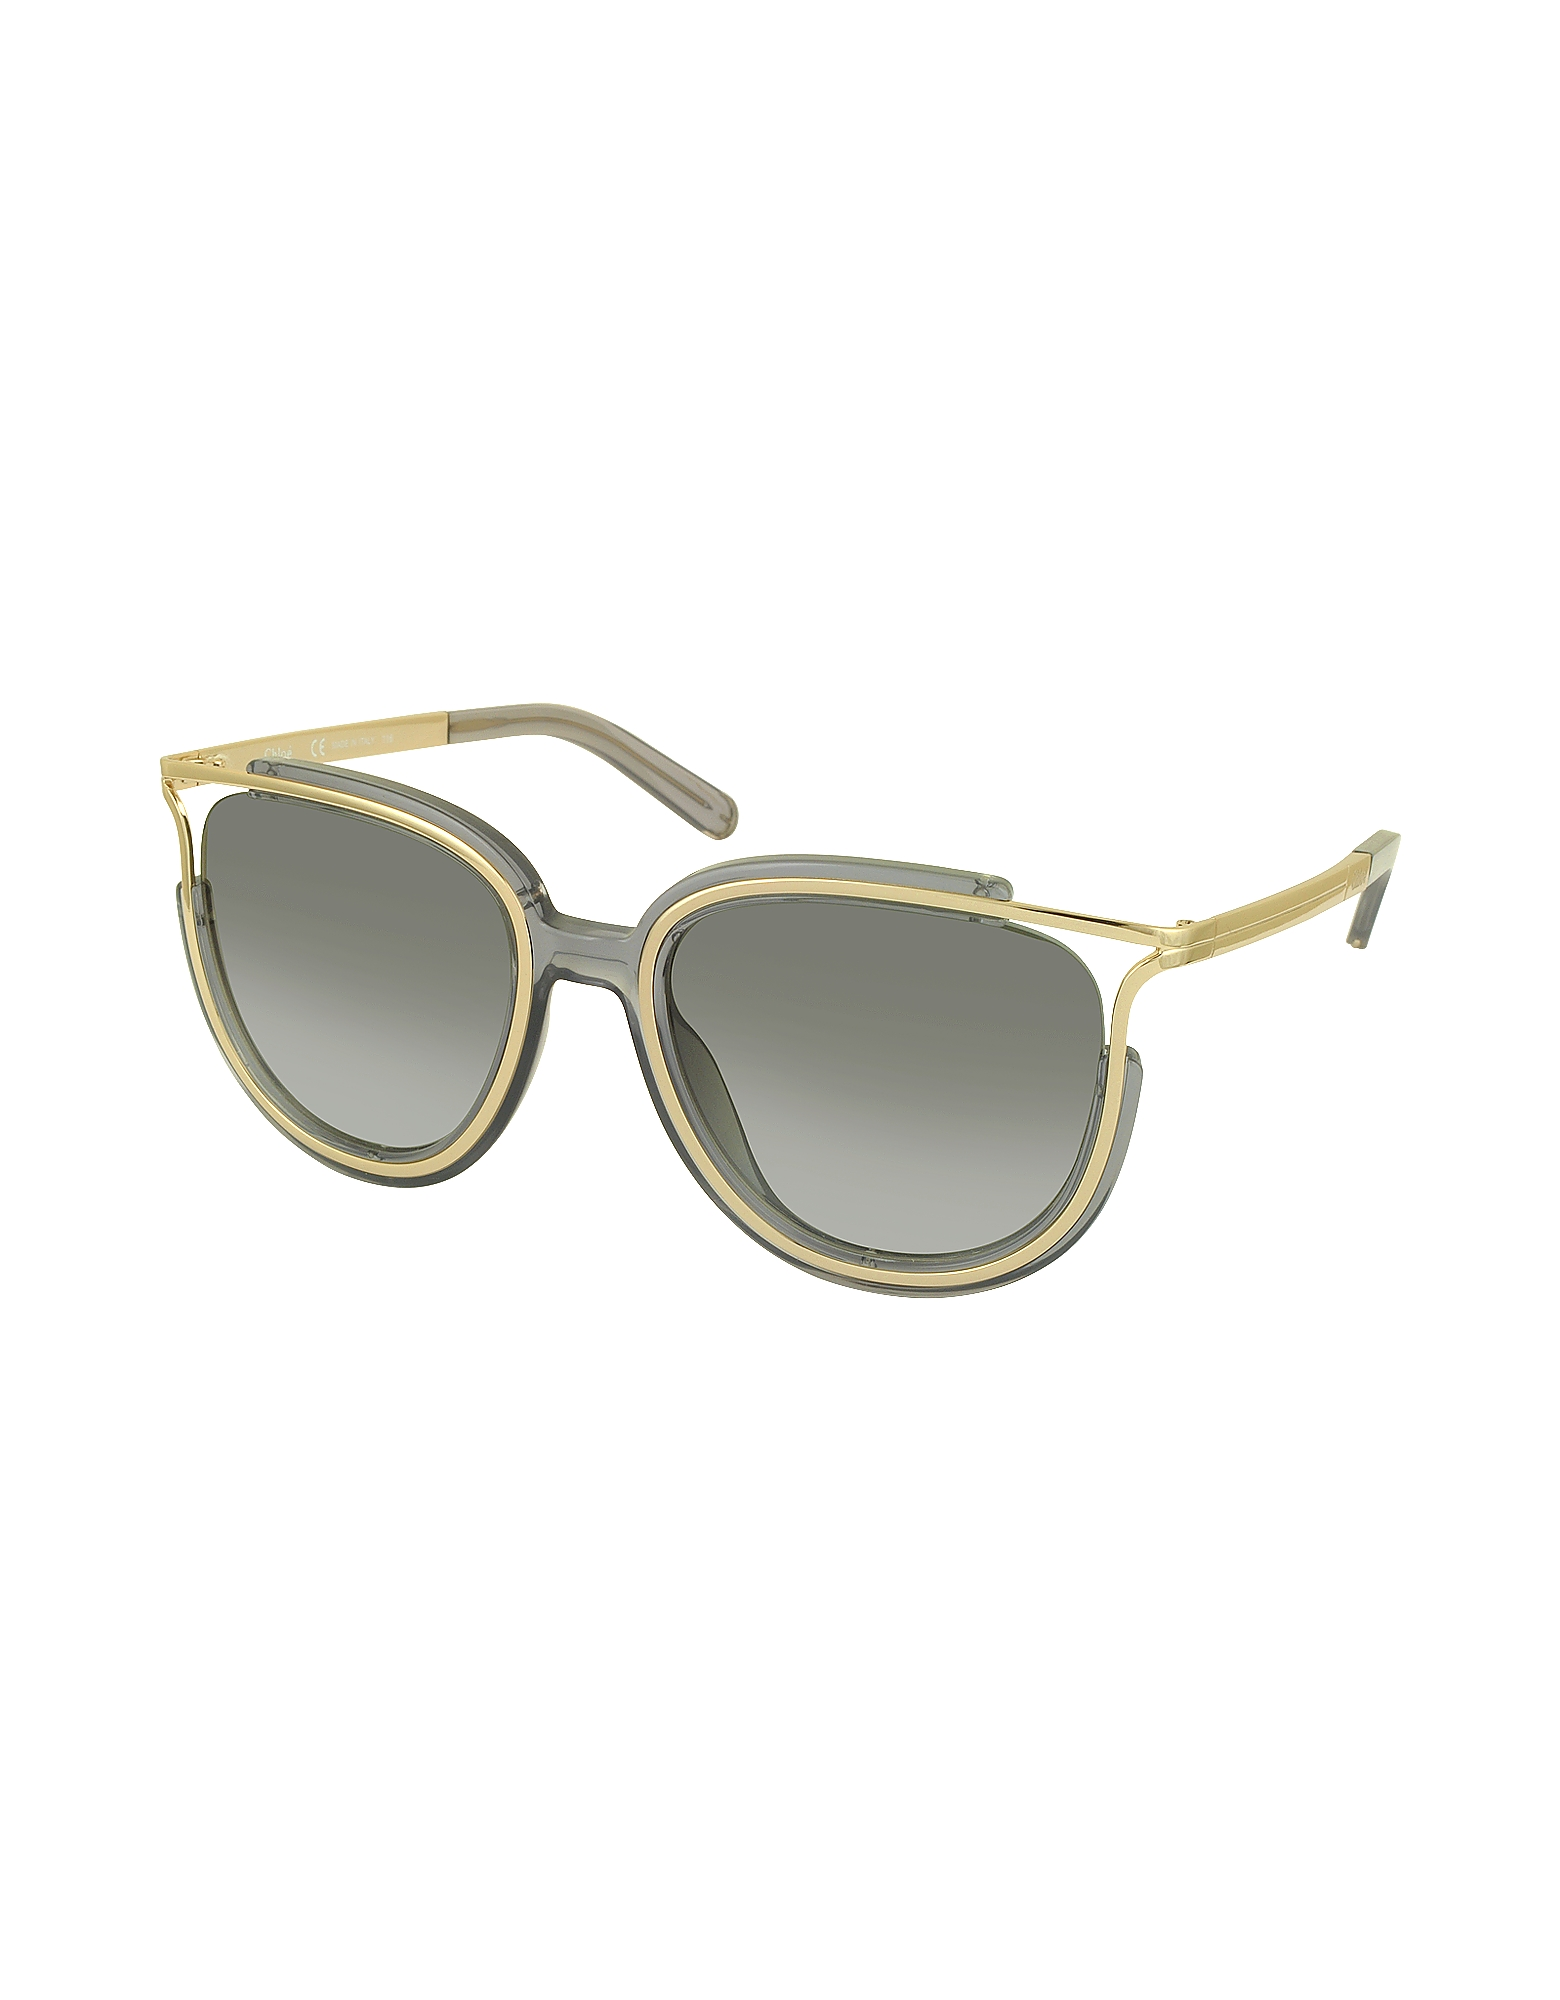 JAYME CE 688S 036 Gray Acetate and Gold Metal Square Women's Sunglasses от Forzieri.com INT